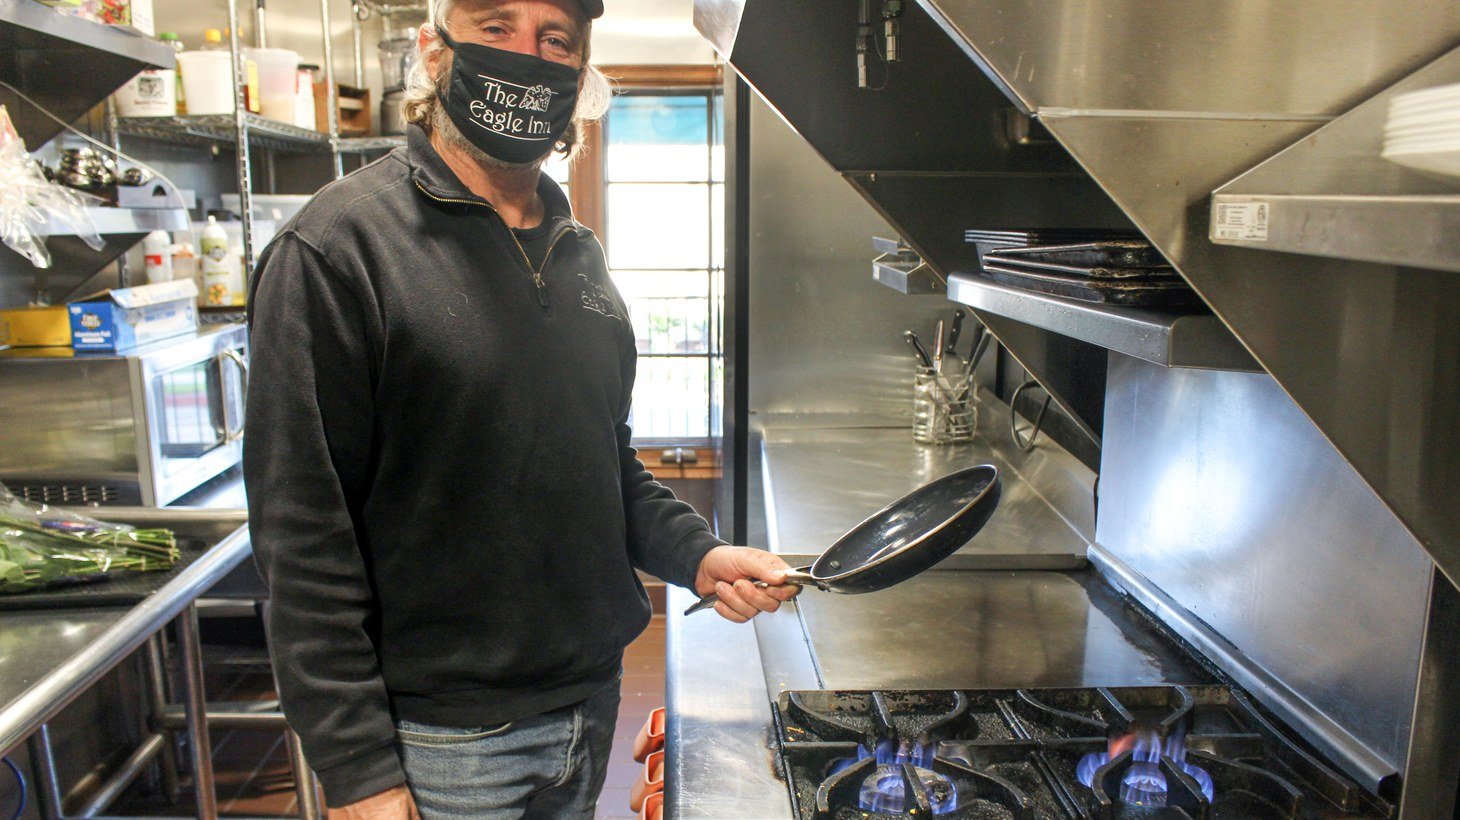 Paul Bullock owns the Eagle Inn, where he and his staff use gas stoves to cook breakfast for roughly 60 guests when fully booked. He doesn't want Santa Barbara City Council to ban natural gas lines in new construction.